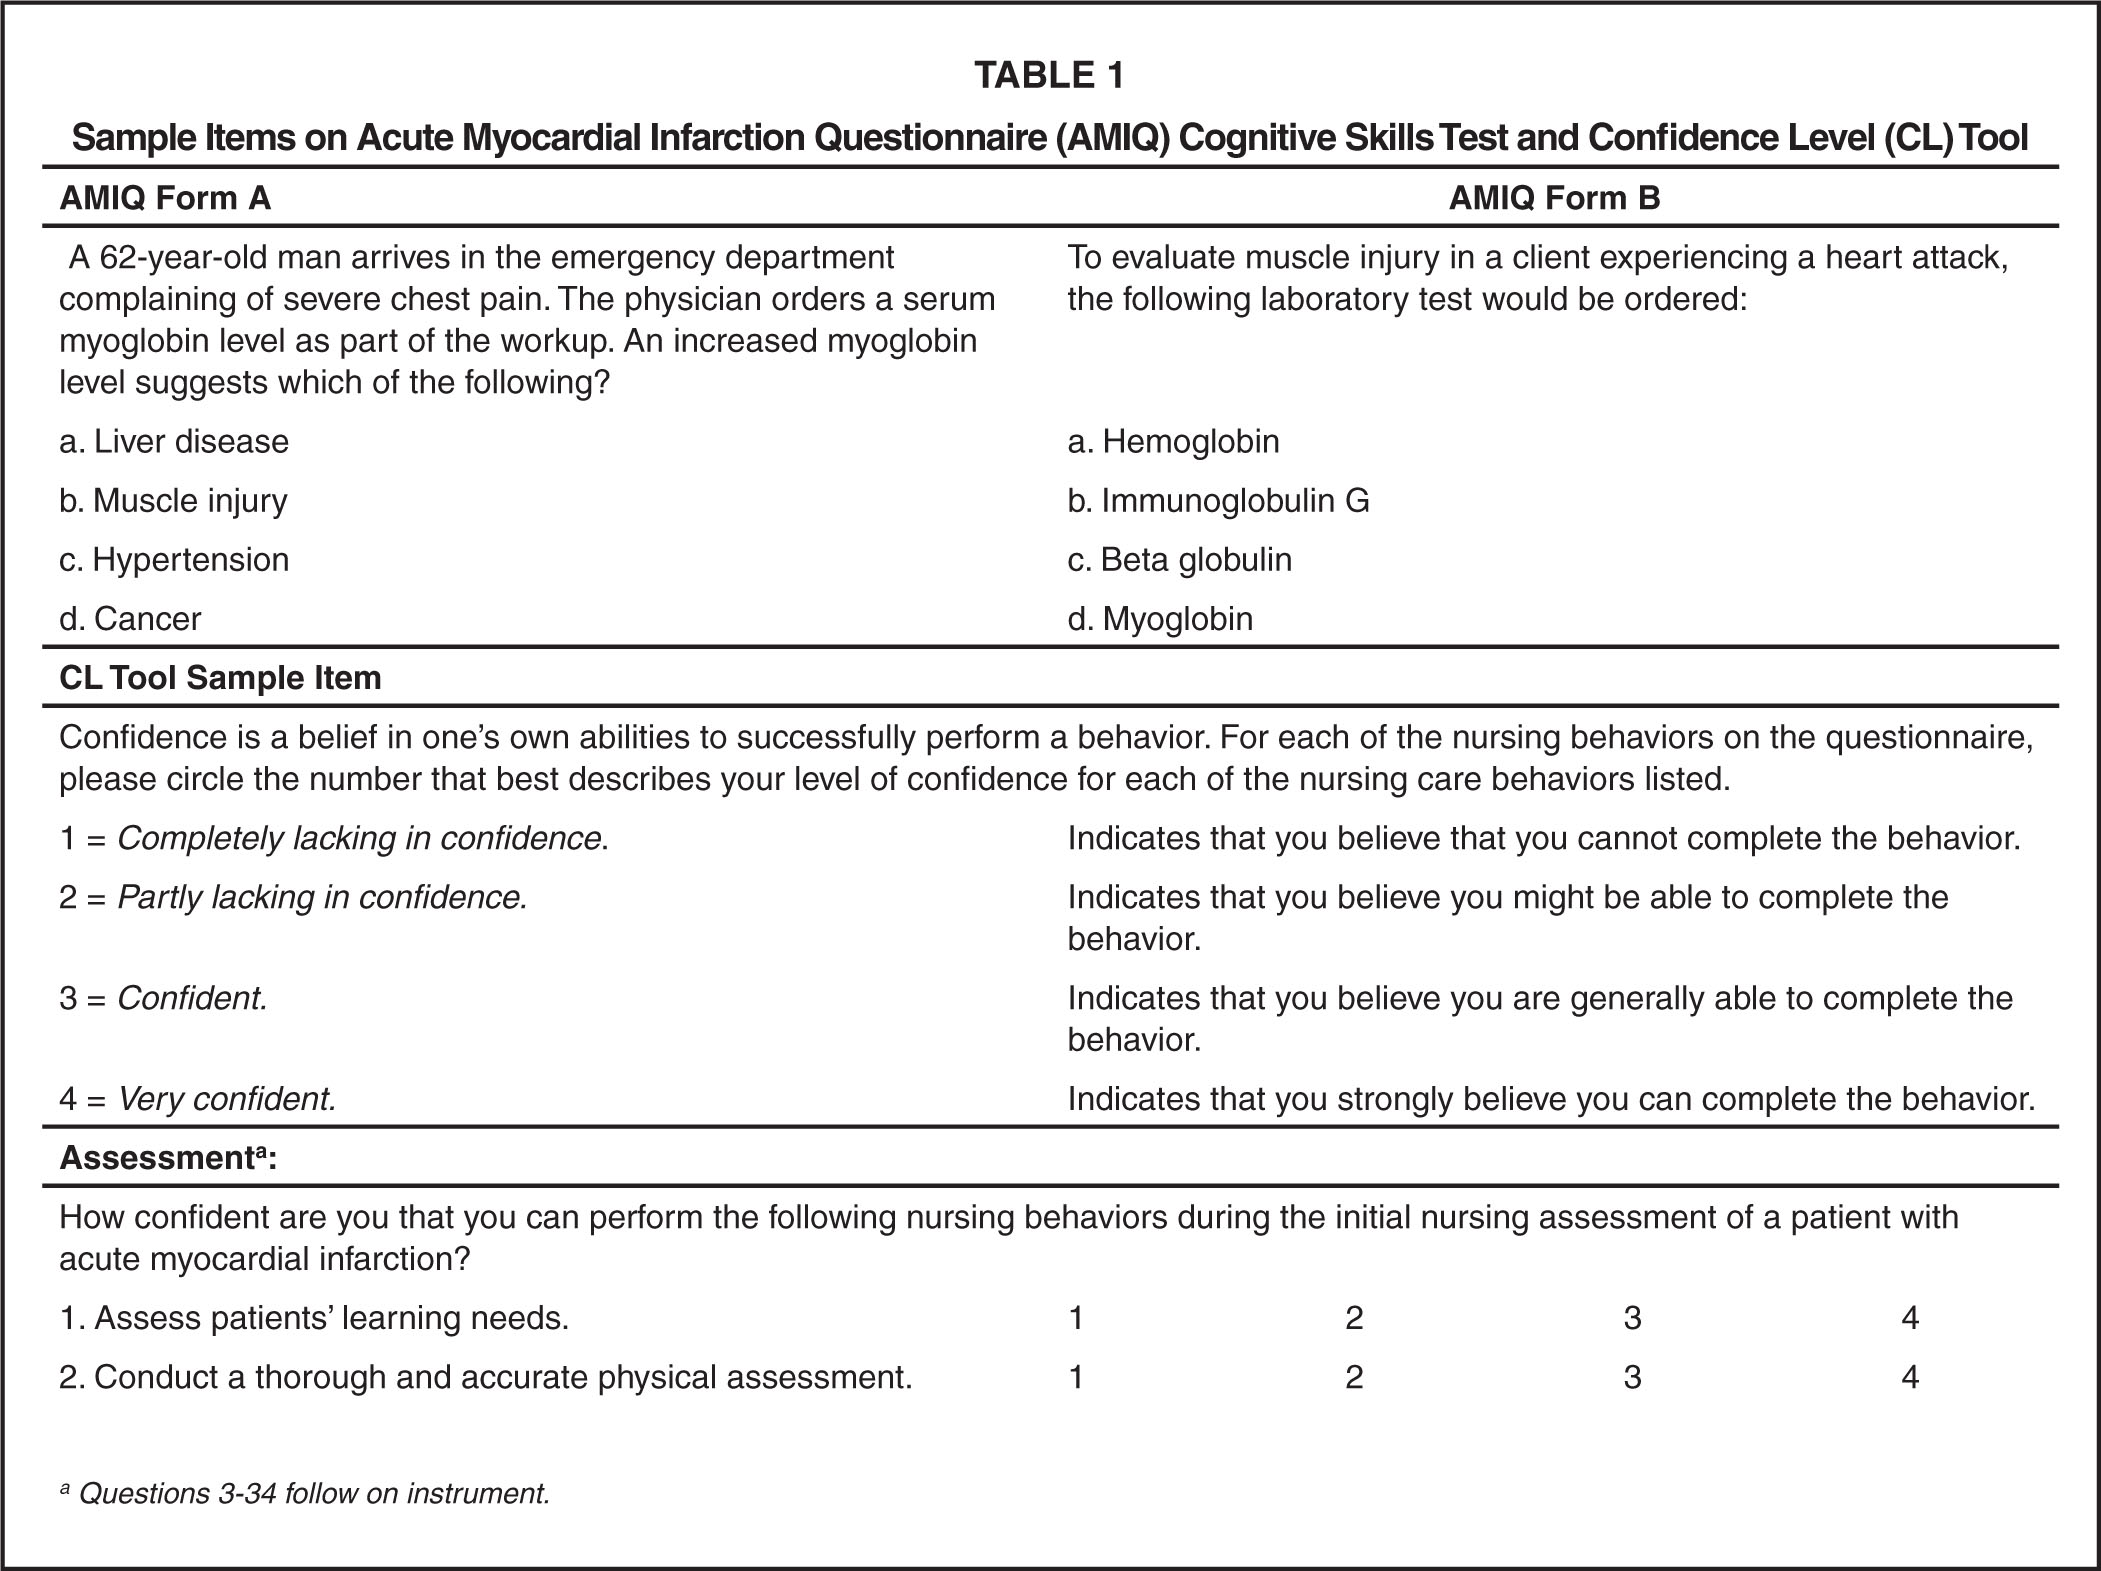 Sample Items on Acute Myocardial Infarction Questionnaire (AMIQ) Cognitive Skills Test and Confidence Level (CL) Tool